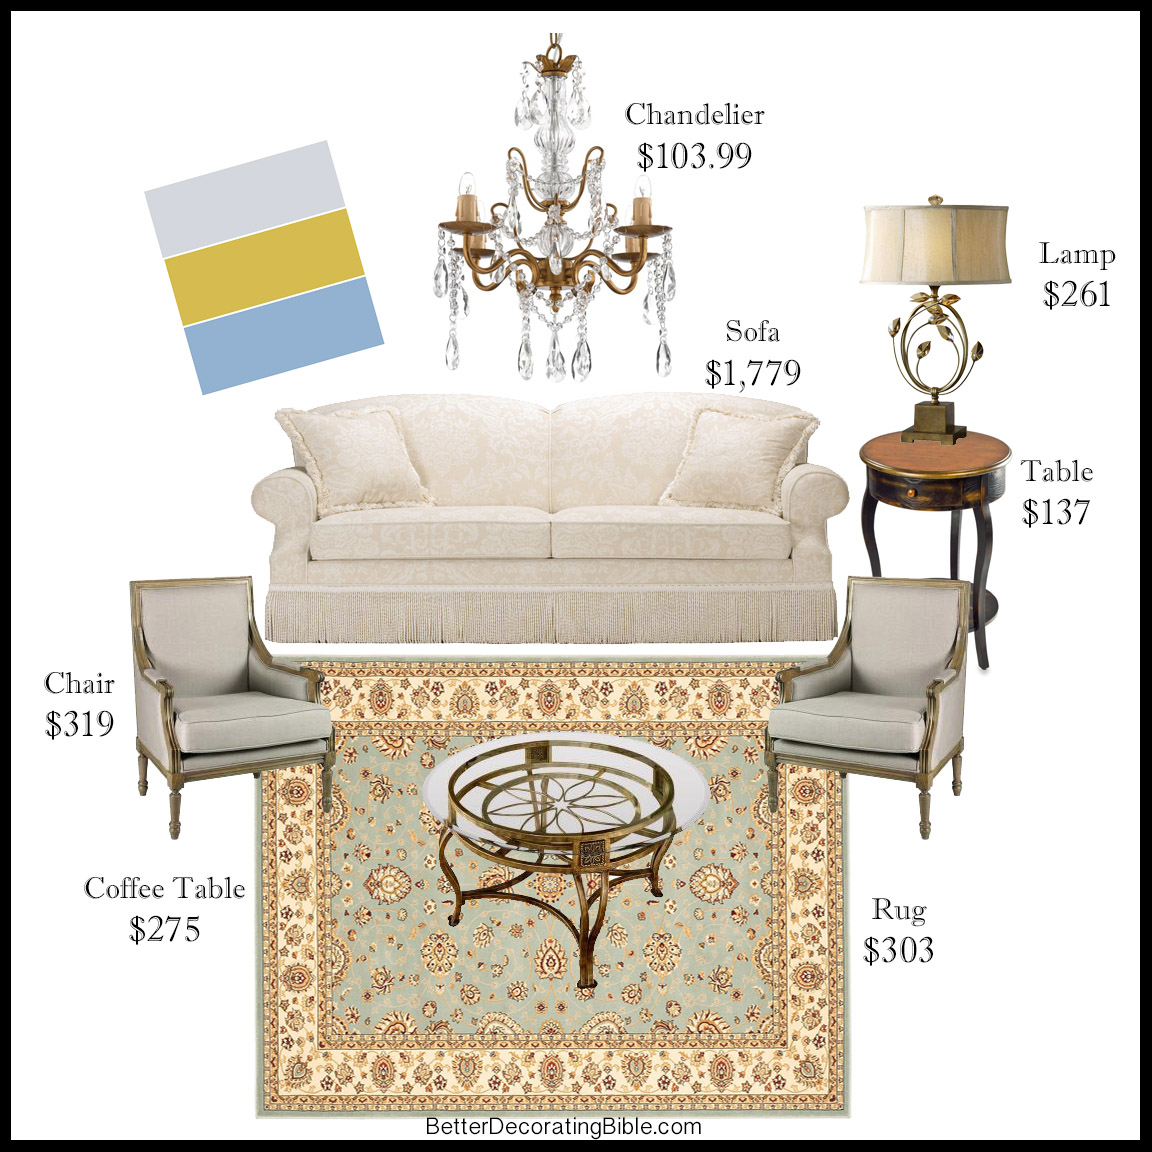 get the look for less kenneth bordewick gold chandelier rug persian aristocratic style cheap budget